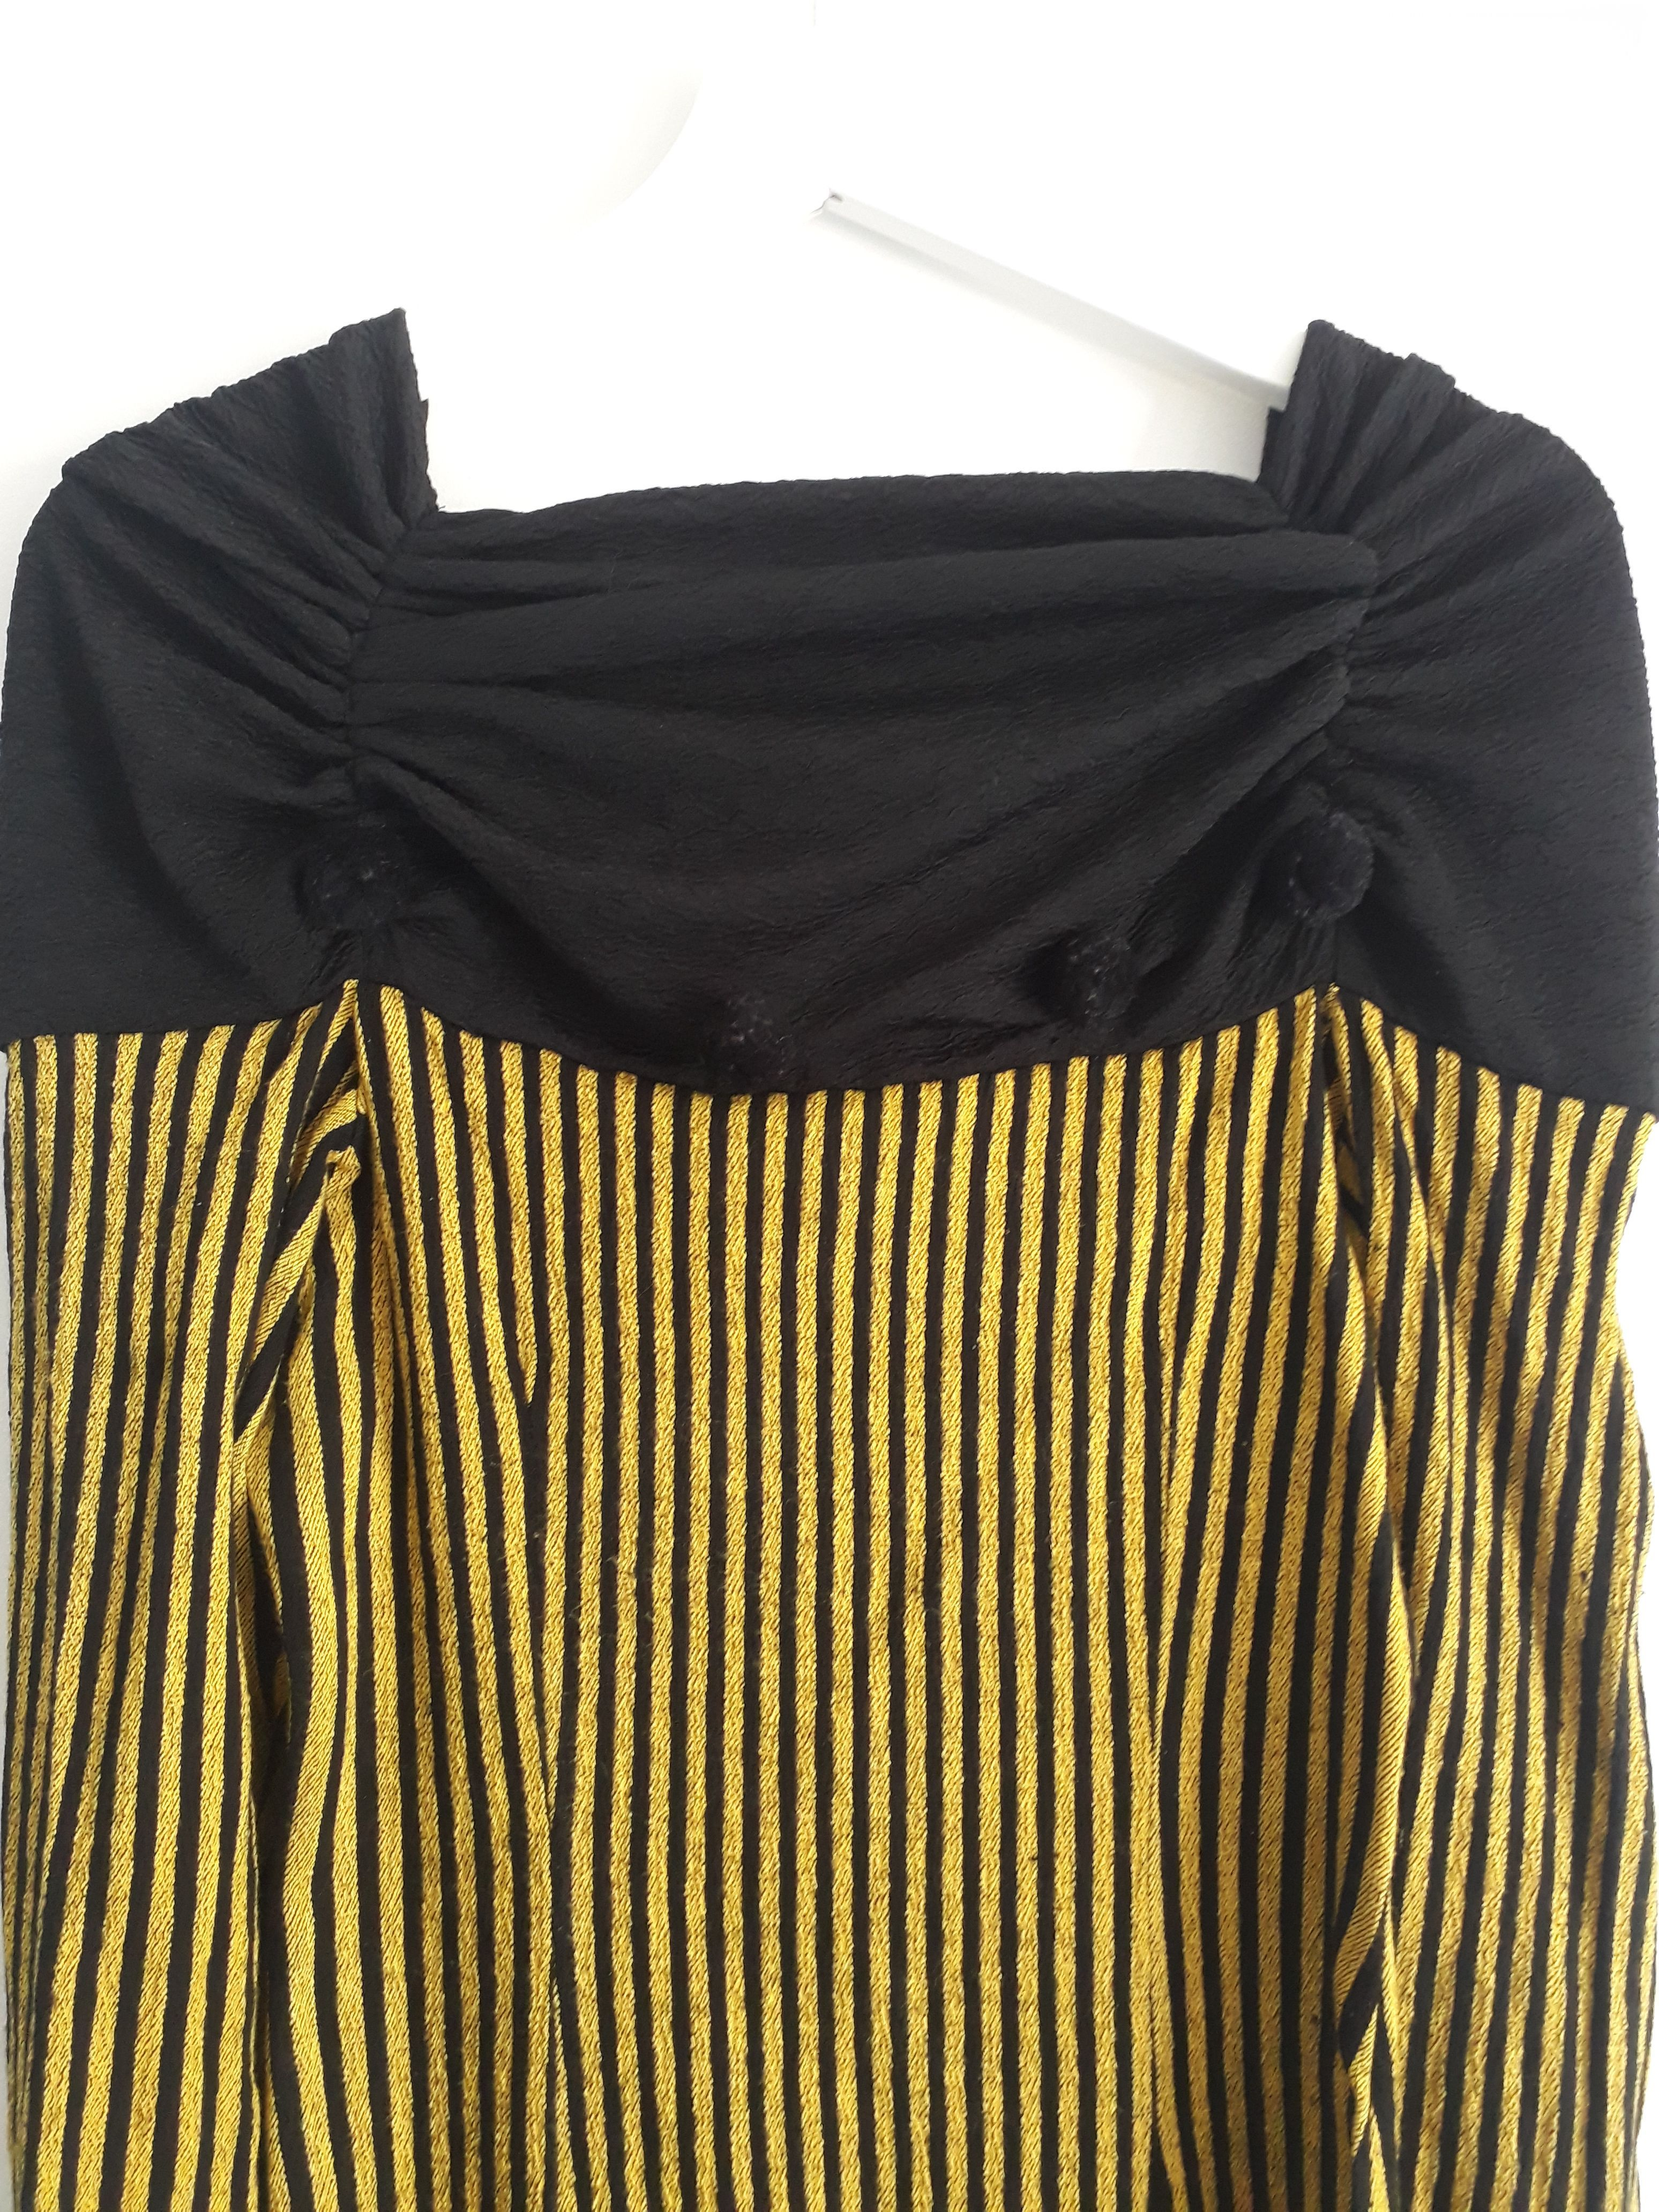 Robes - Robe à rayures